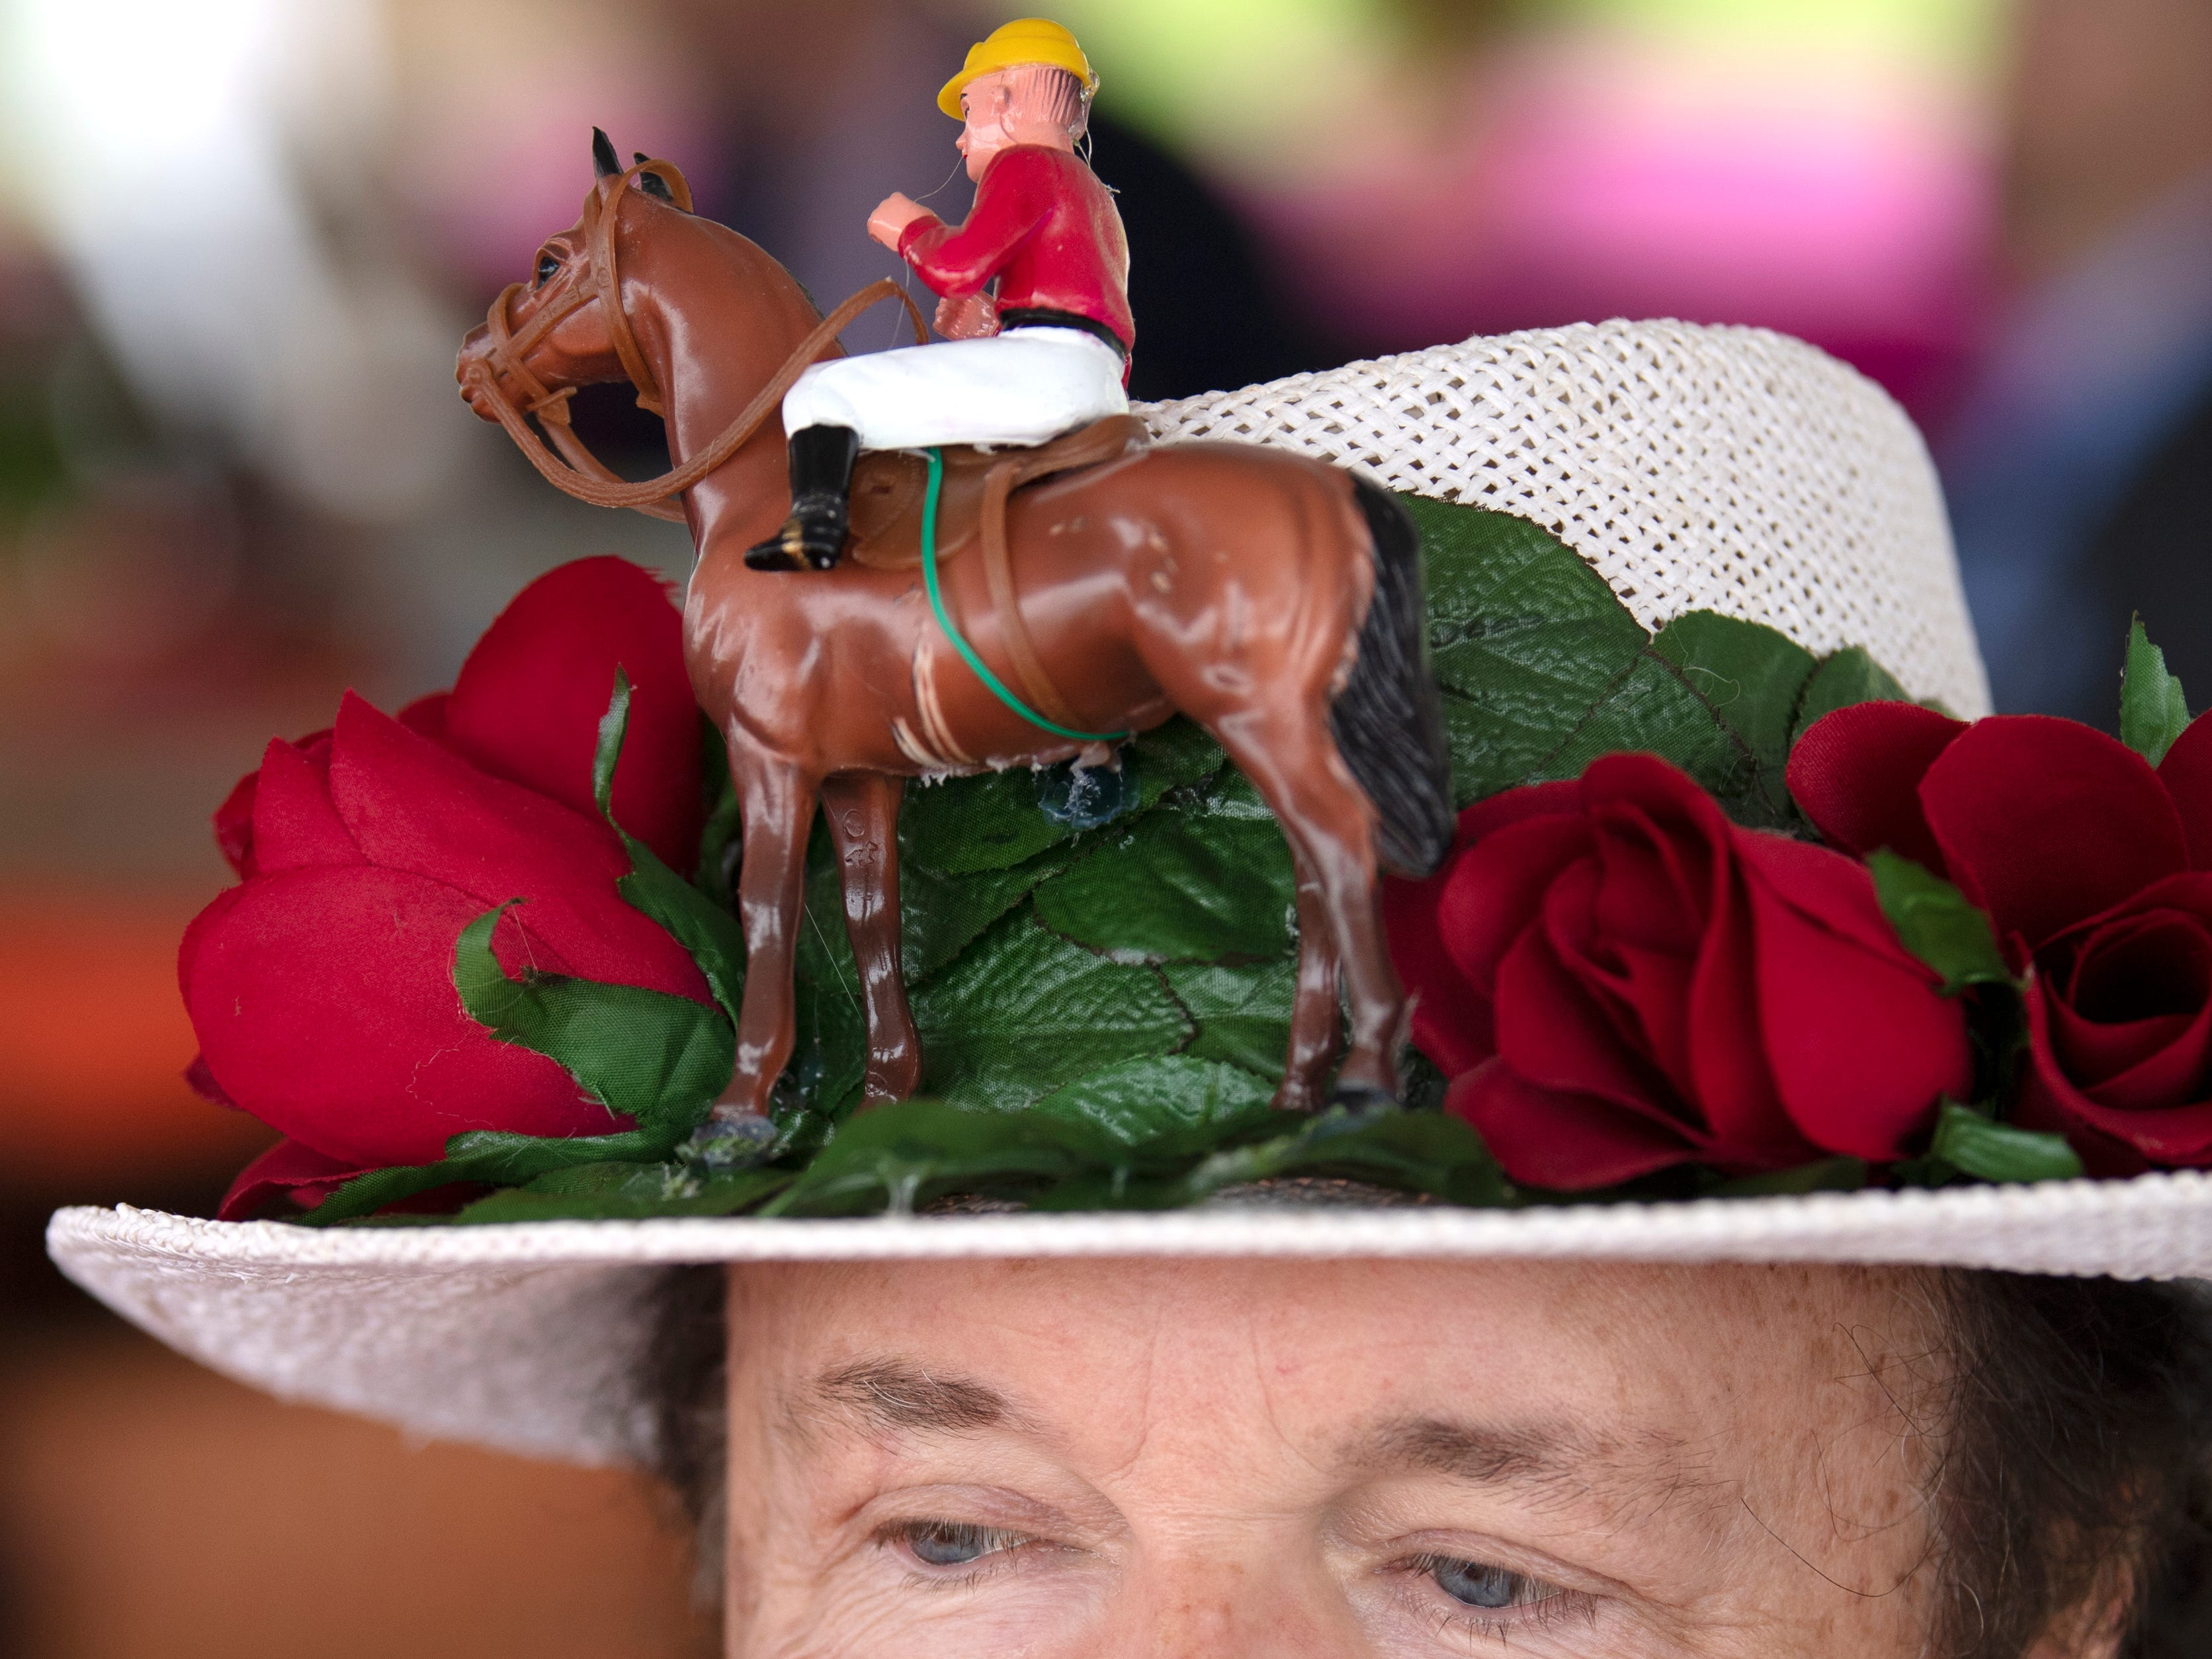 Steve Harder at the 78th Iroquois Steeplechase at Percy Warner Park in Nashville on Saturday, May 11, 2019.